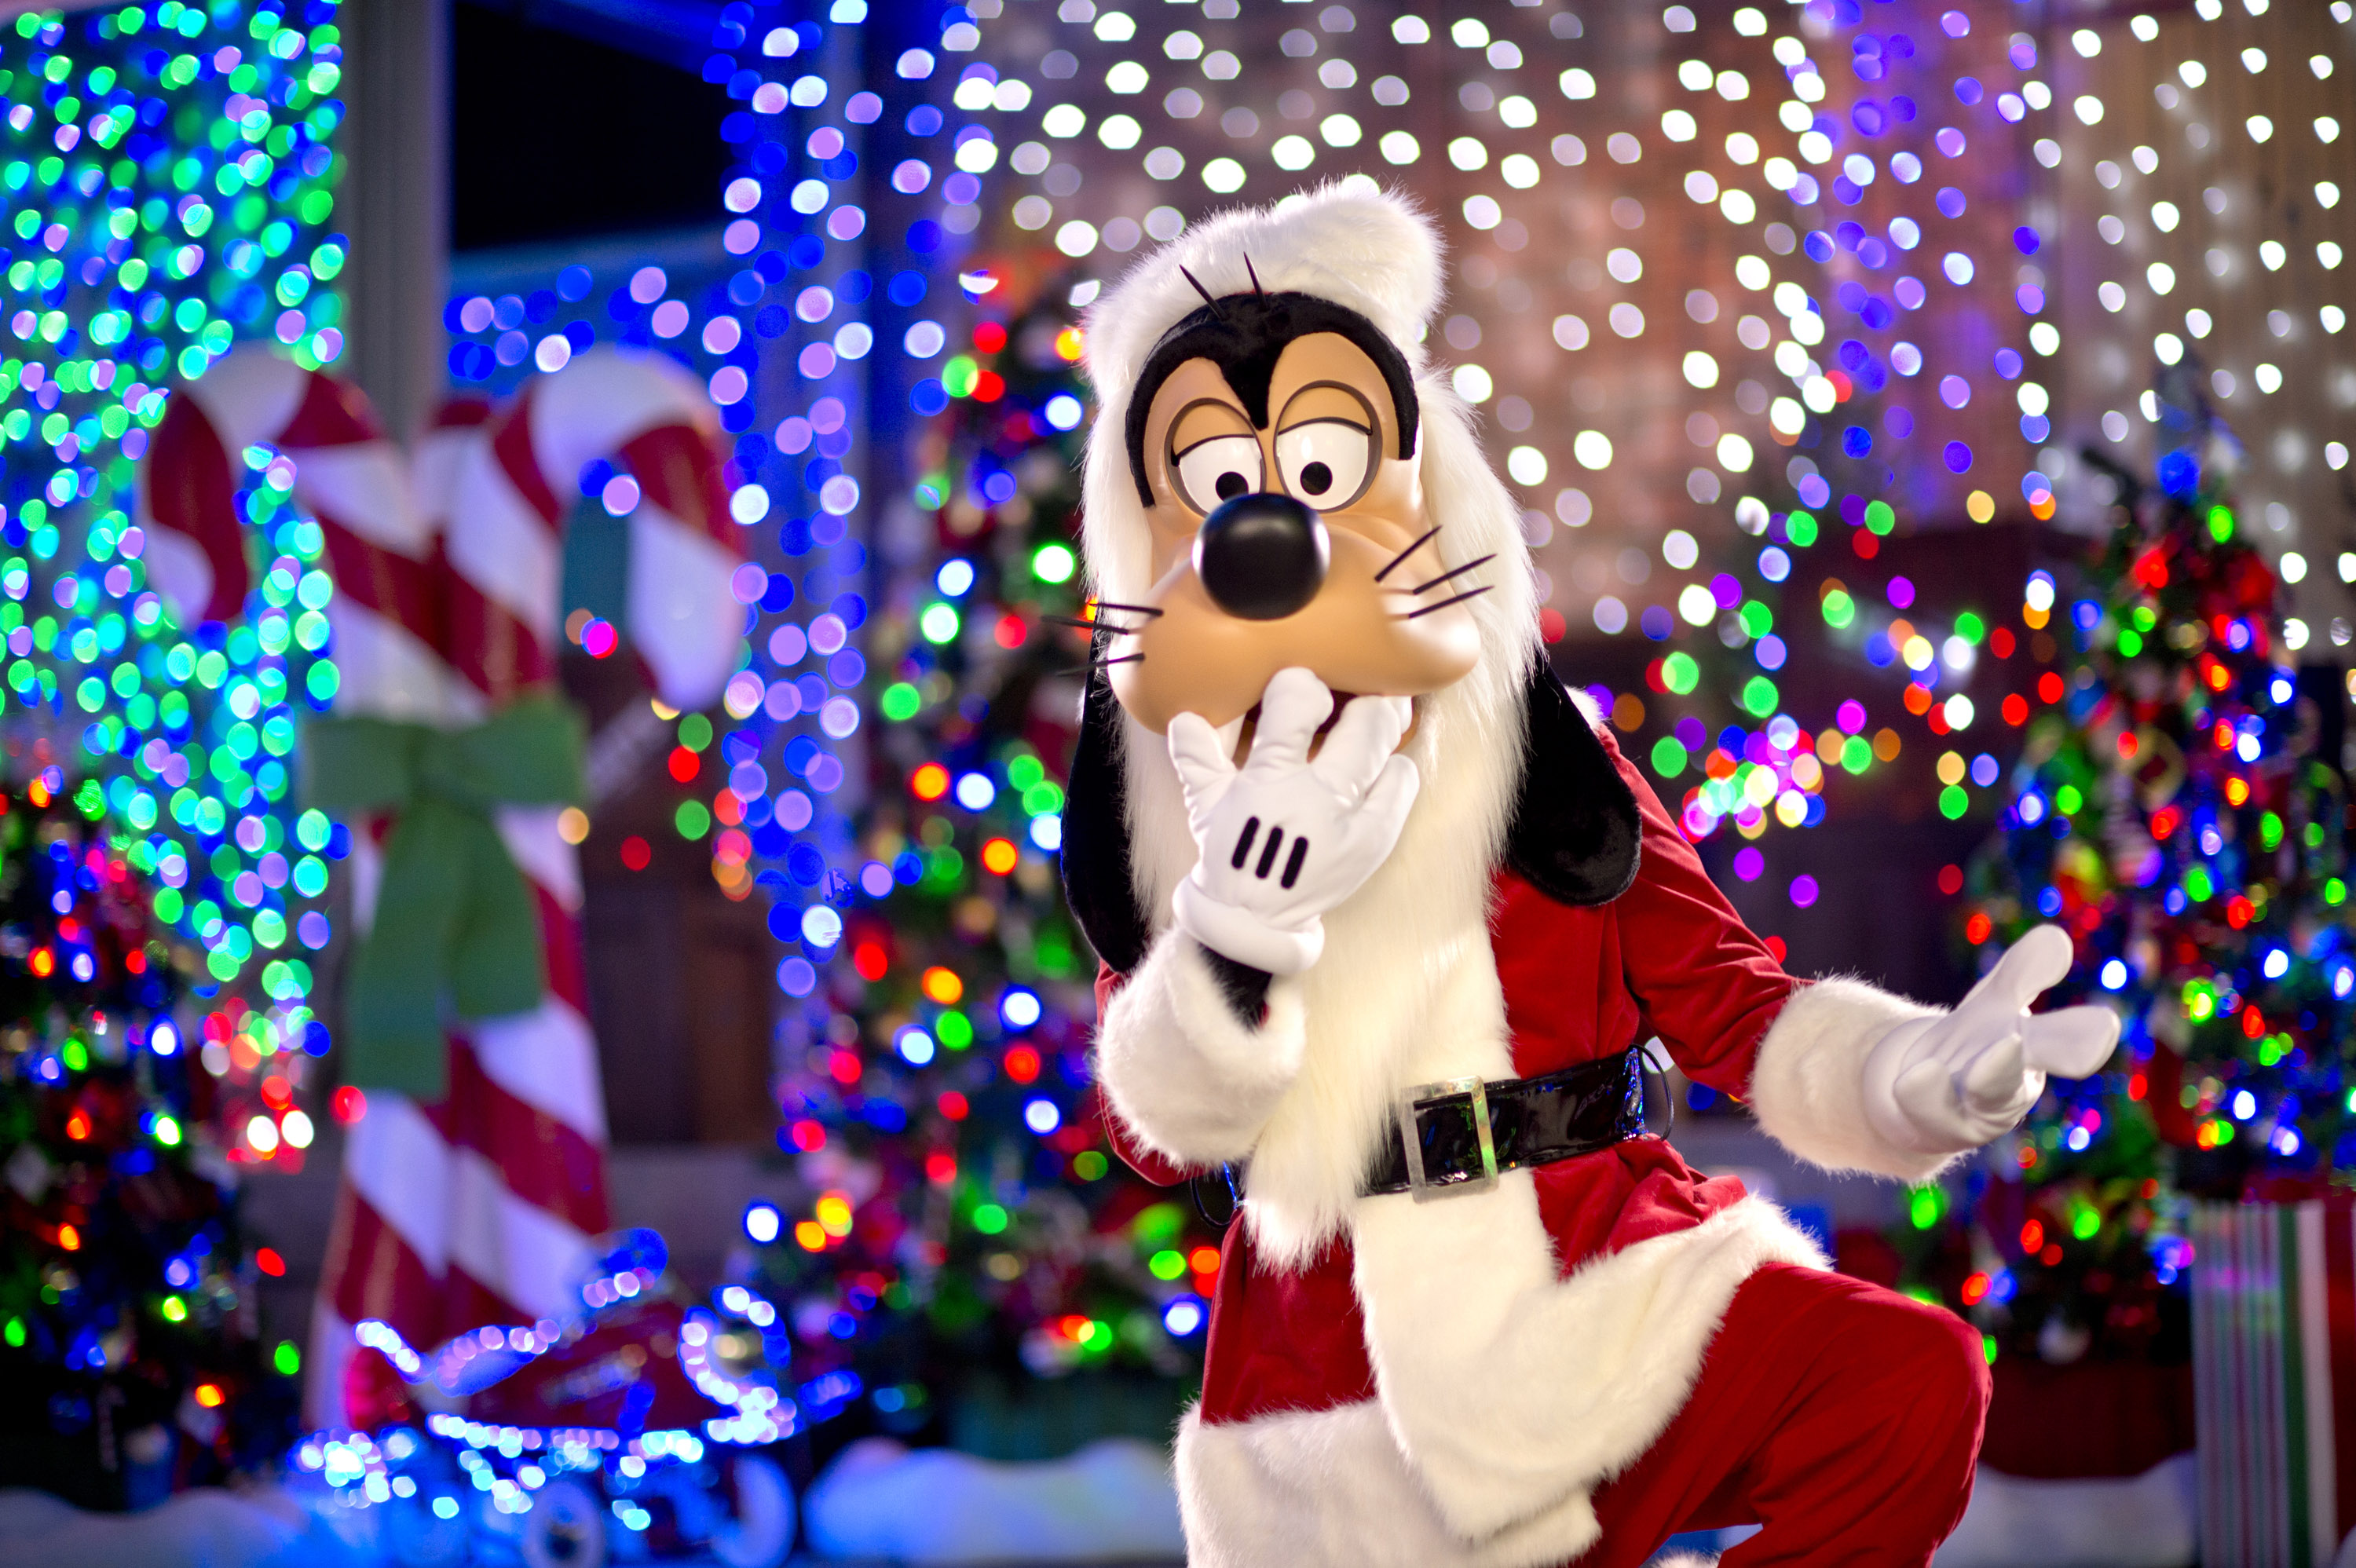 55e89c58da7c9 Santa Goofy joins the fun during The Osborne Family Spectacle of Dancing  Lights at Disney s Hollywood Studios. Making nightly appearances on the  Streets of ...